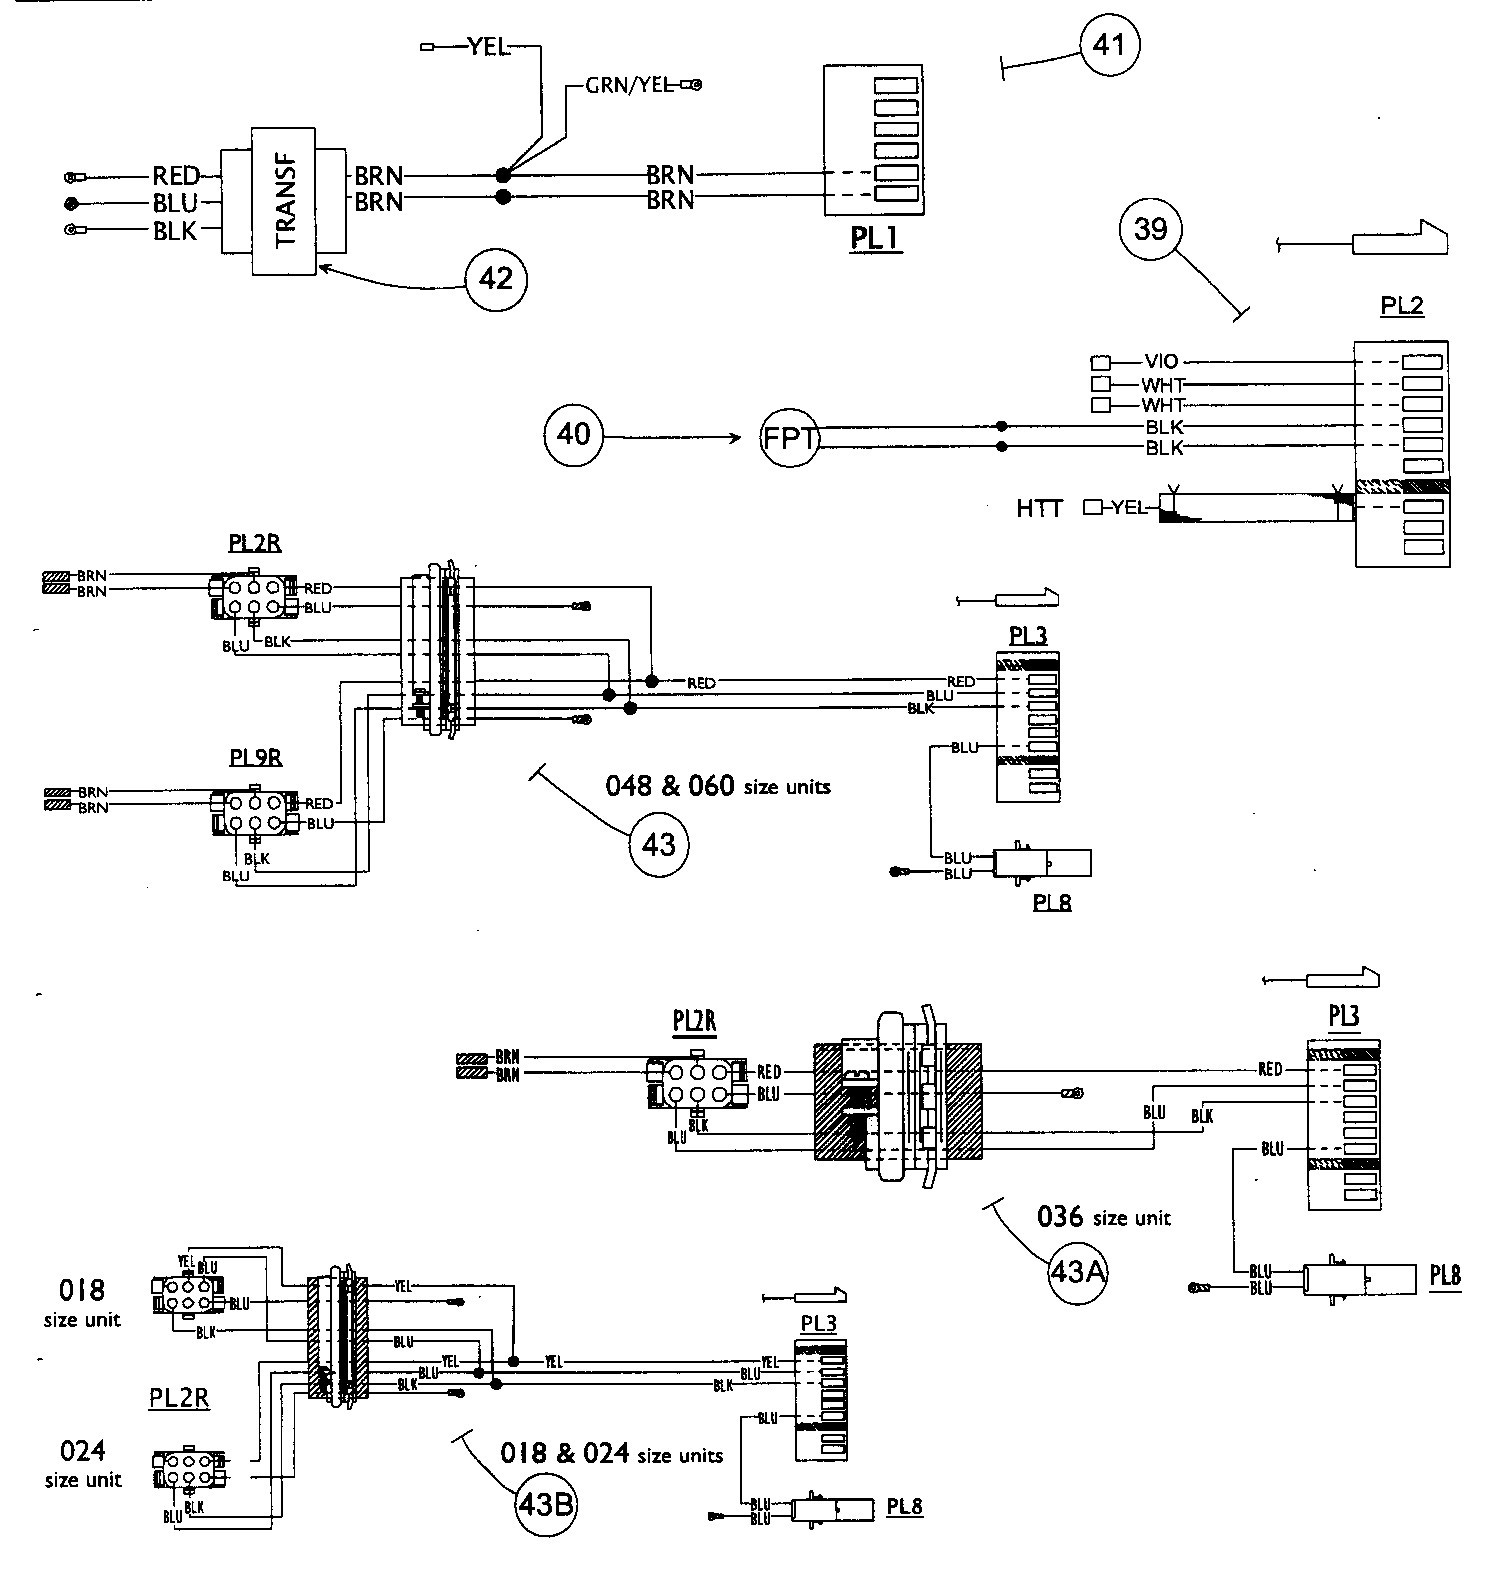 carrier split ac wiring diagram Collection-Carrier Air Handler Wiring Diagram List Split Ac Wiring Diagram Image Best Diagrams Carrier Air Conditioner 17-r